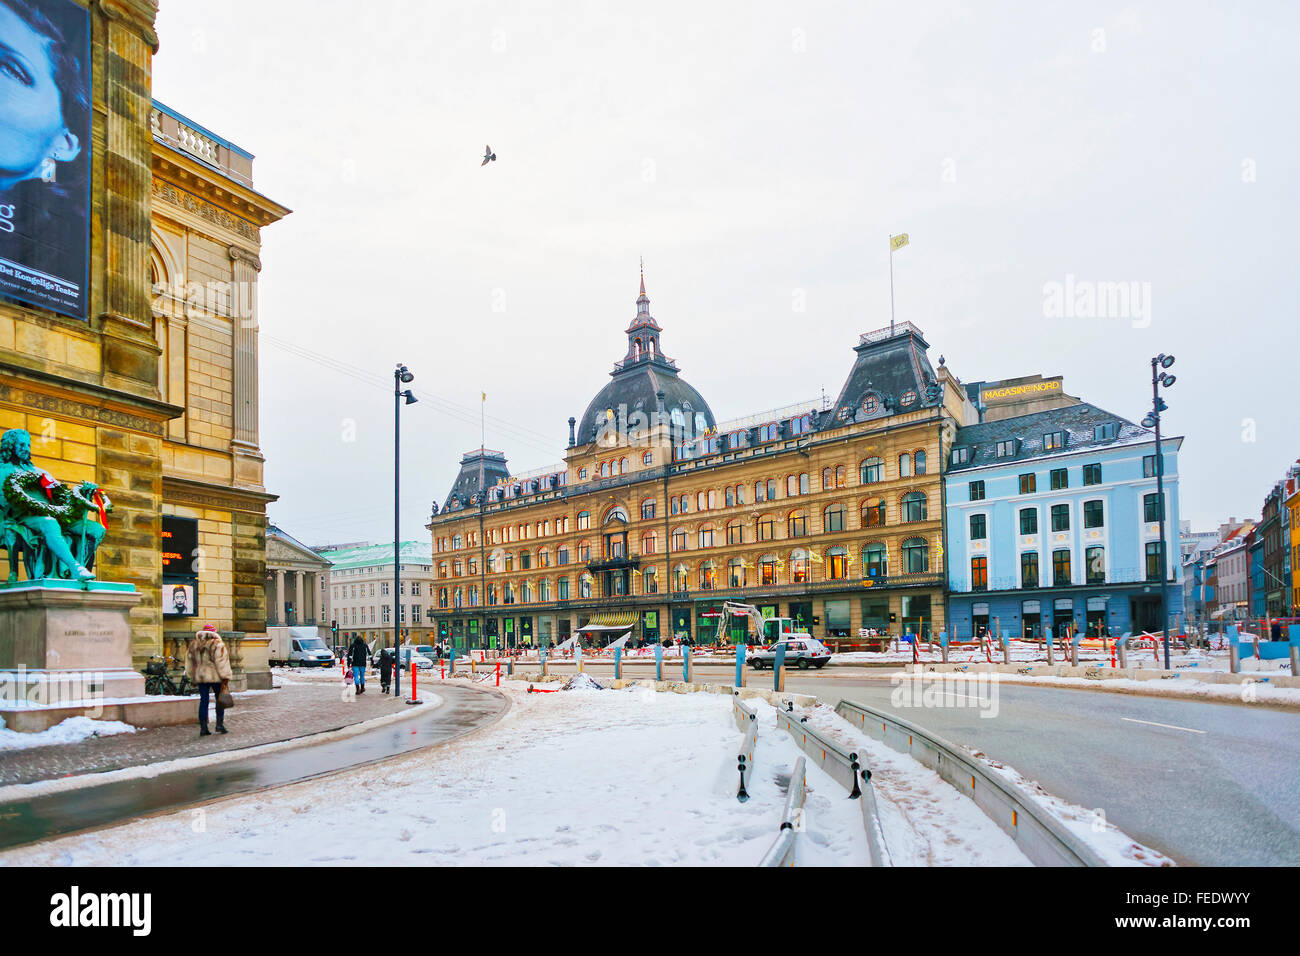 COPENHAGEN DENMARK - JANUARY 5, 2011: Street view on Magasin du Nord in winter. Magasin du Nord is a Danish chain - Stock Image